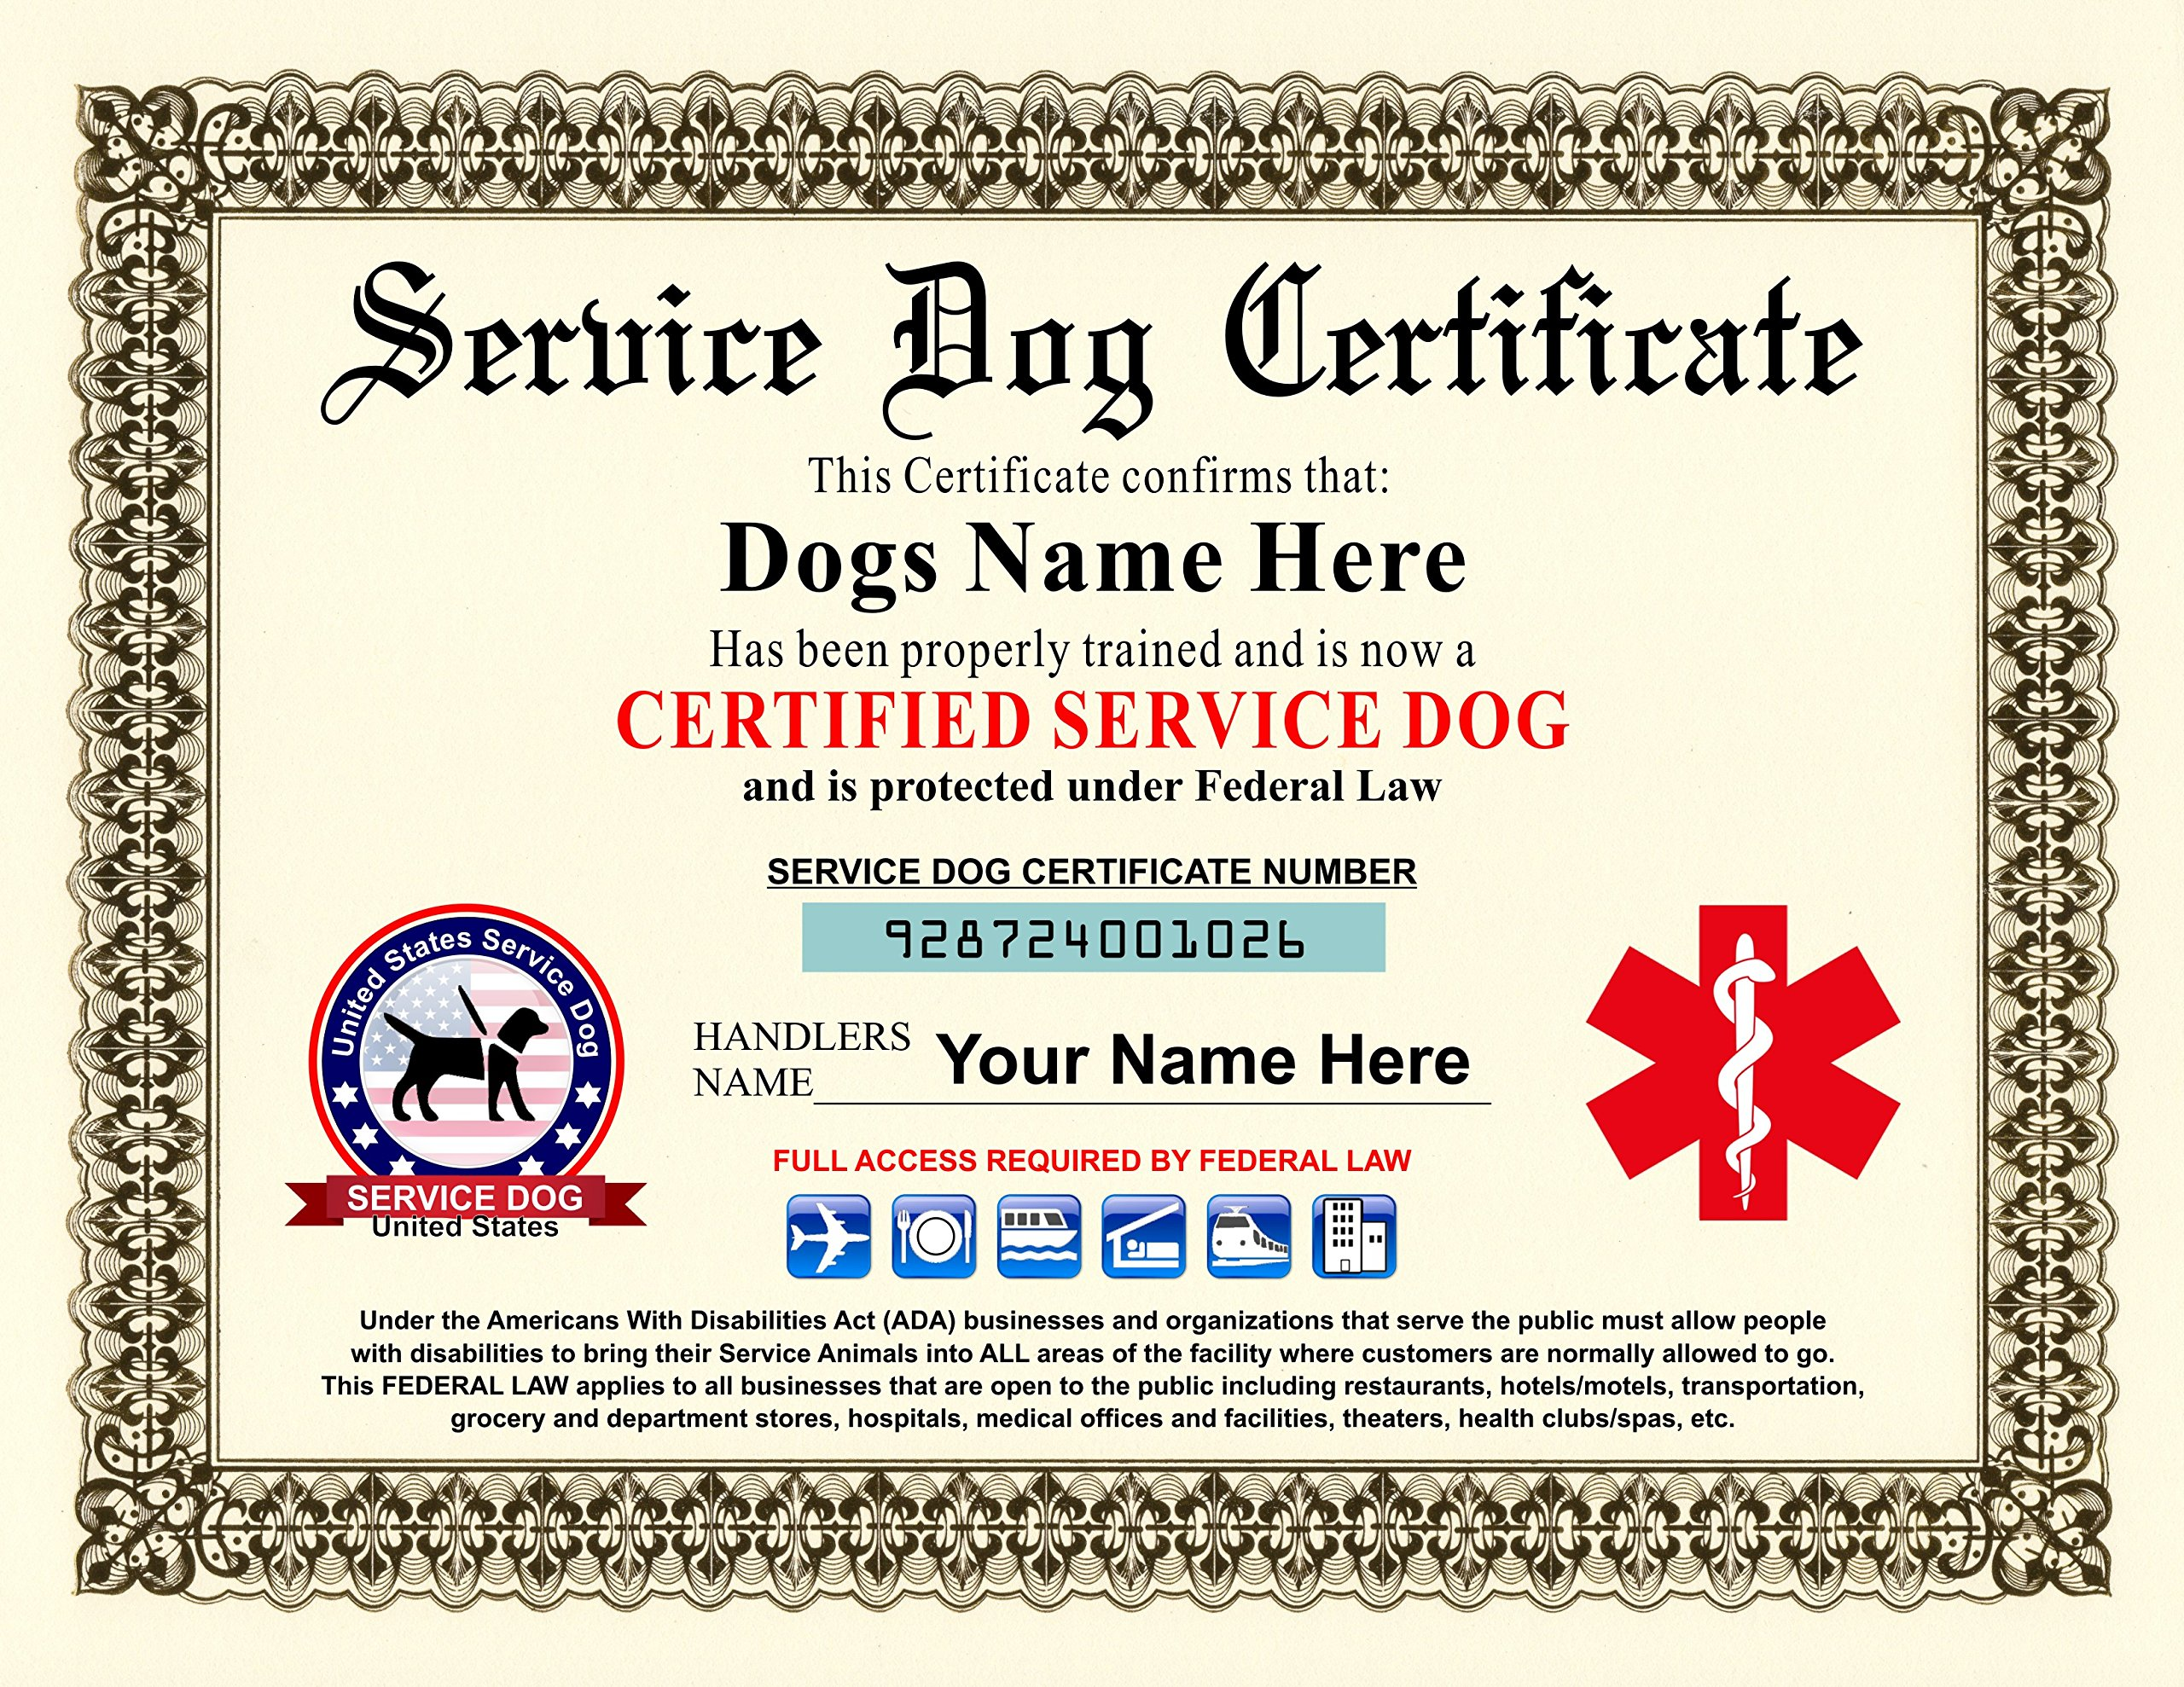 Service Dog Certificate - Customizable with Dogs / Handlers Name